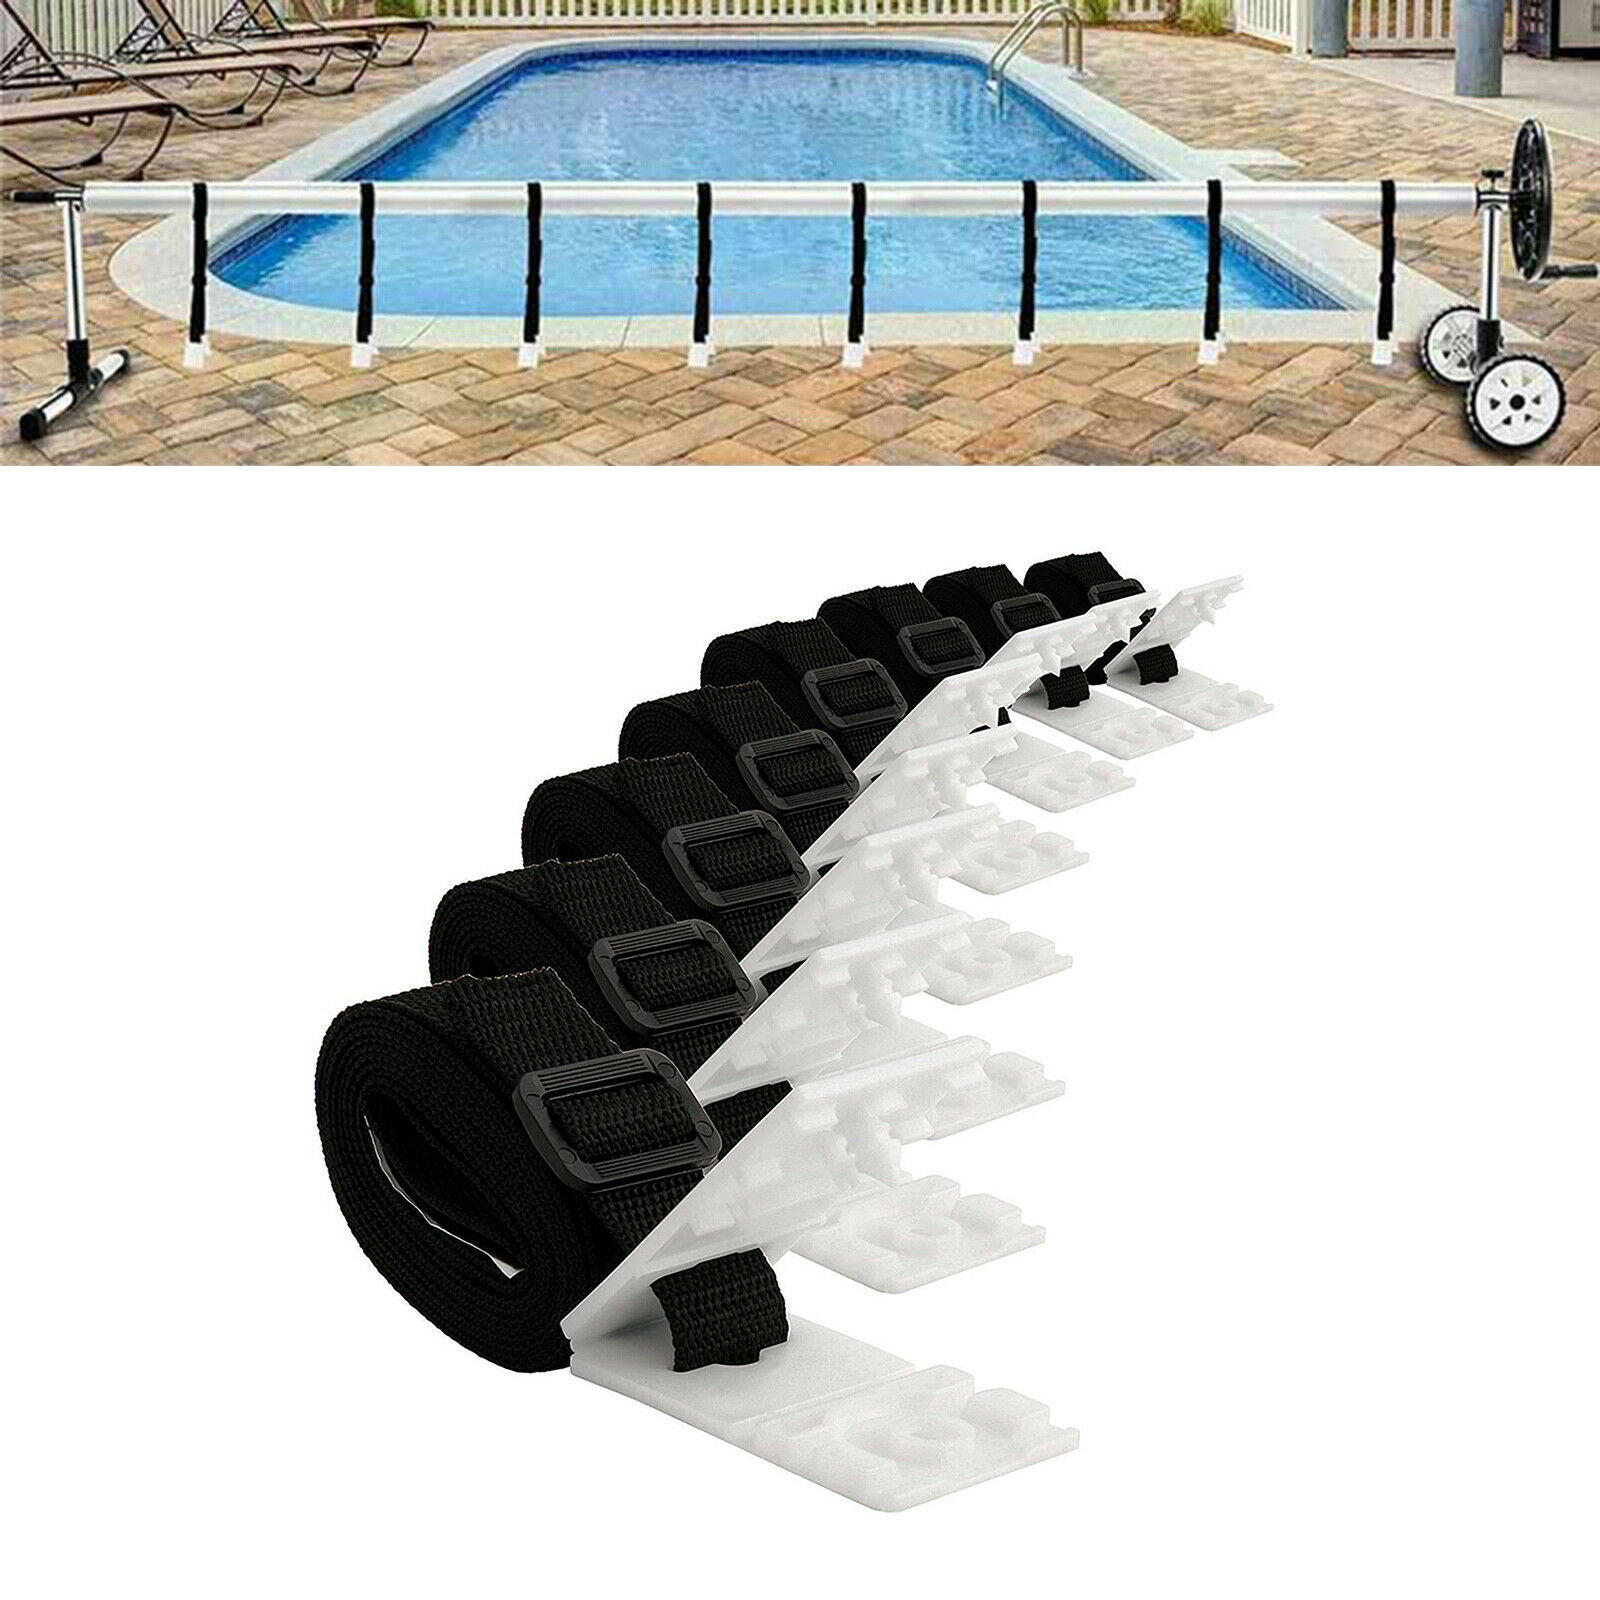 Pool Cover Roller Attachment Solar Blanket Straps Connects Your Solar Cover to